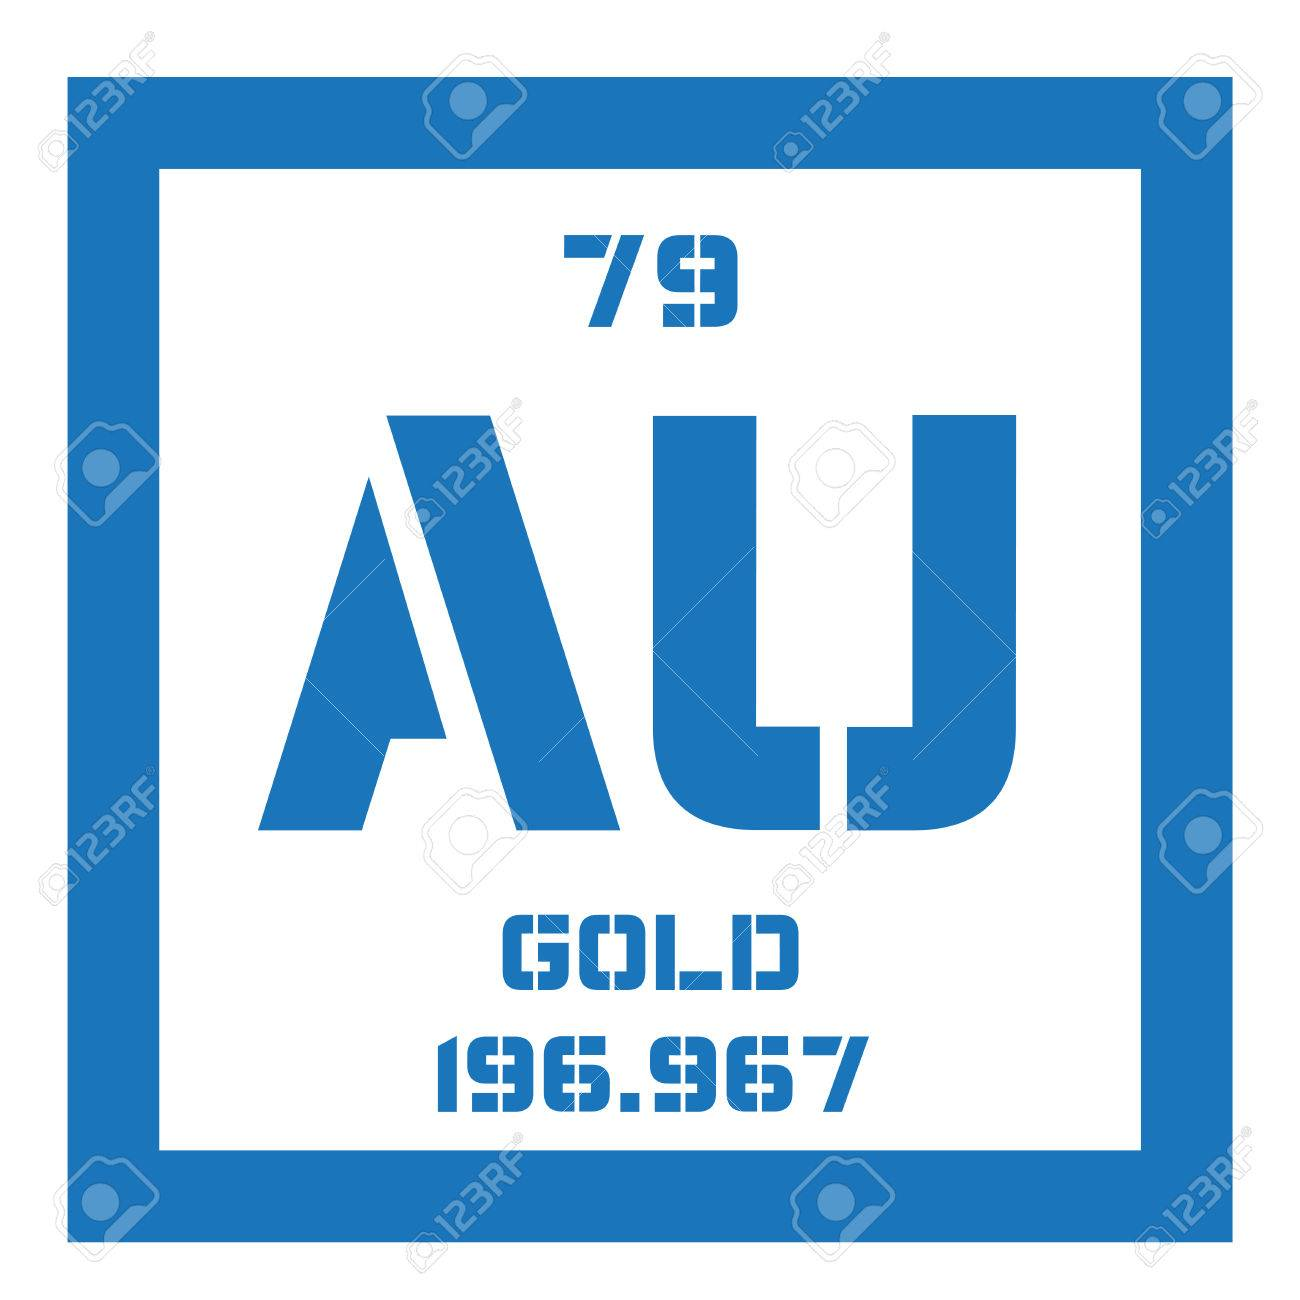 Gold chemical element one of the least reactive chemical elements gold chemical element one of the least reactive chemical elements colored icon with atomic urtaz Gallery